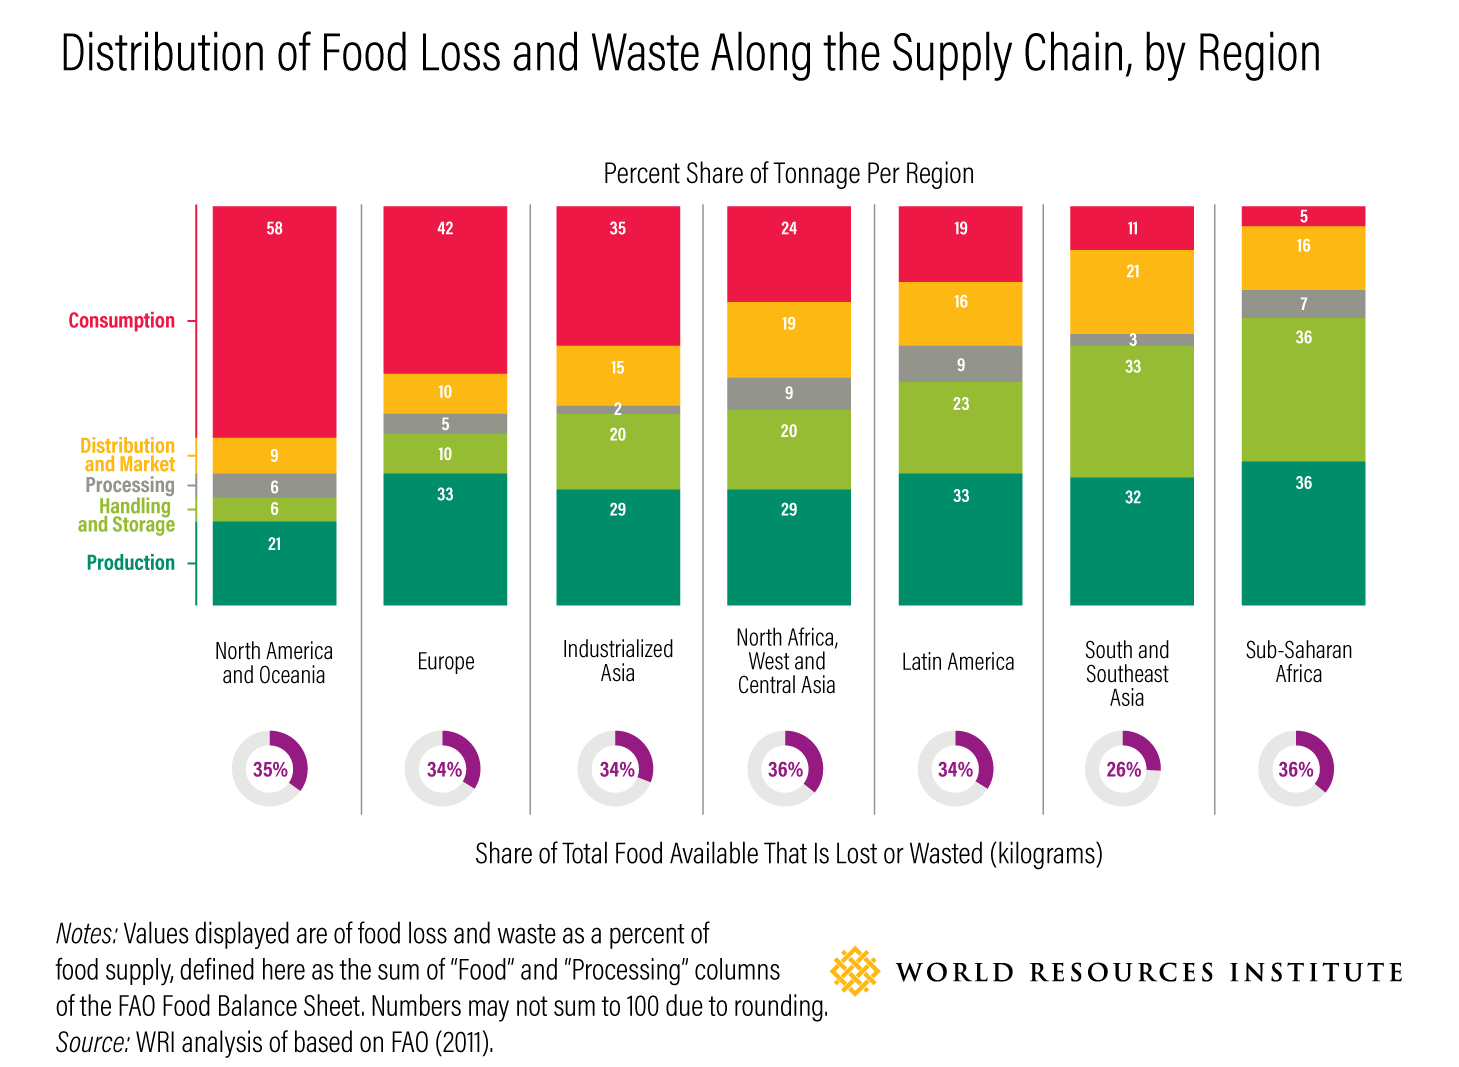 Distribution of Food Loss and Waste Along the Supply Chain, by Region